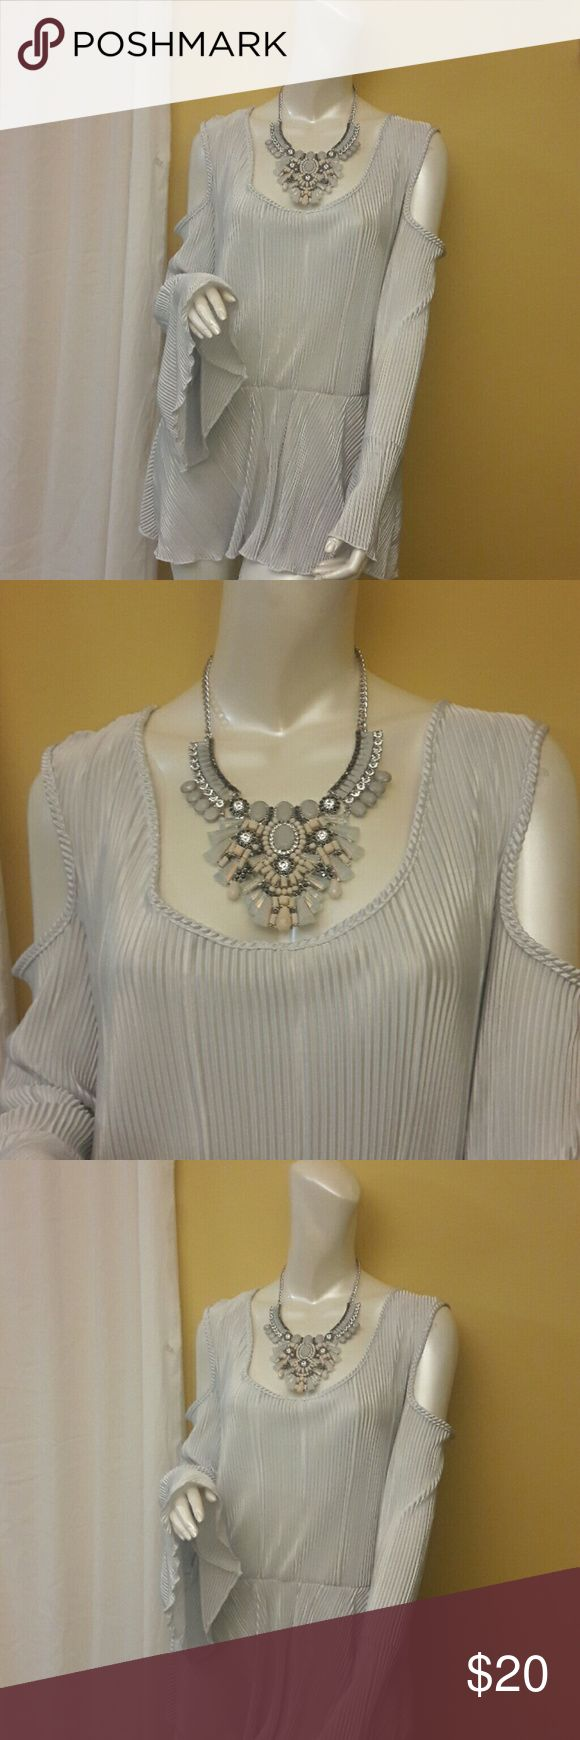 PLUS SIZE Silver Blouse Brilliant silver cold shoulder top!!! Stunning when  paired with a skirt or jeans. 100% polyester. Ashley Stewart Tops Blouses